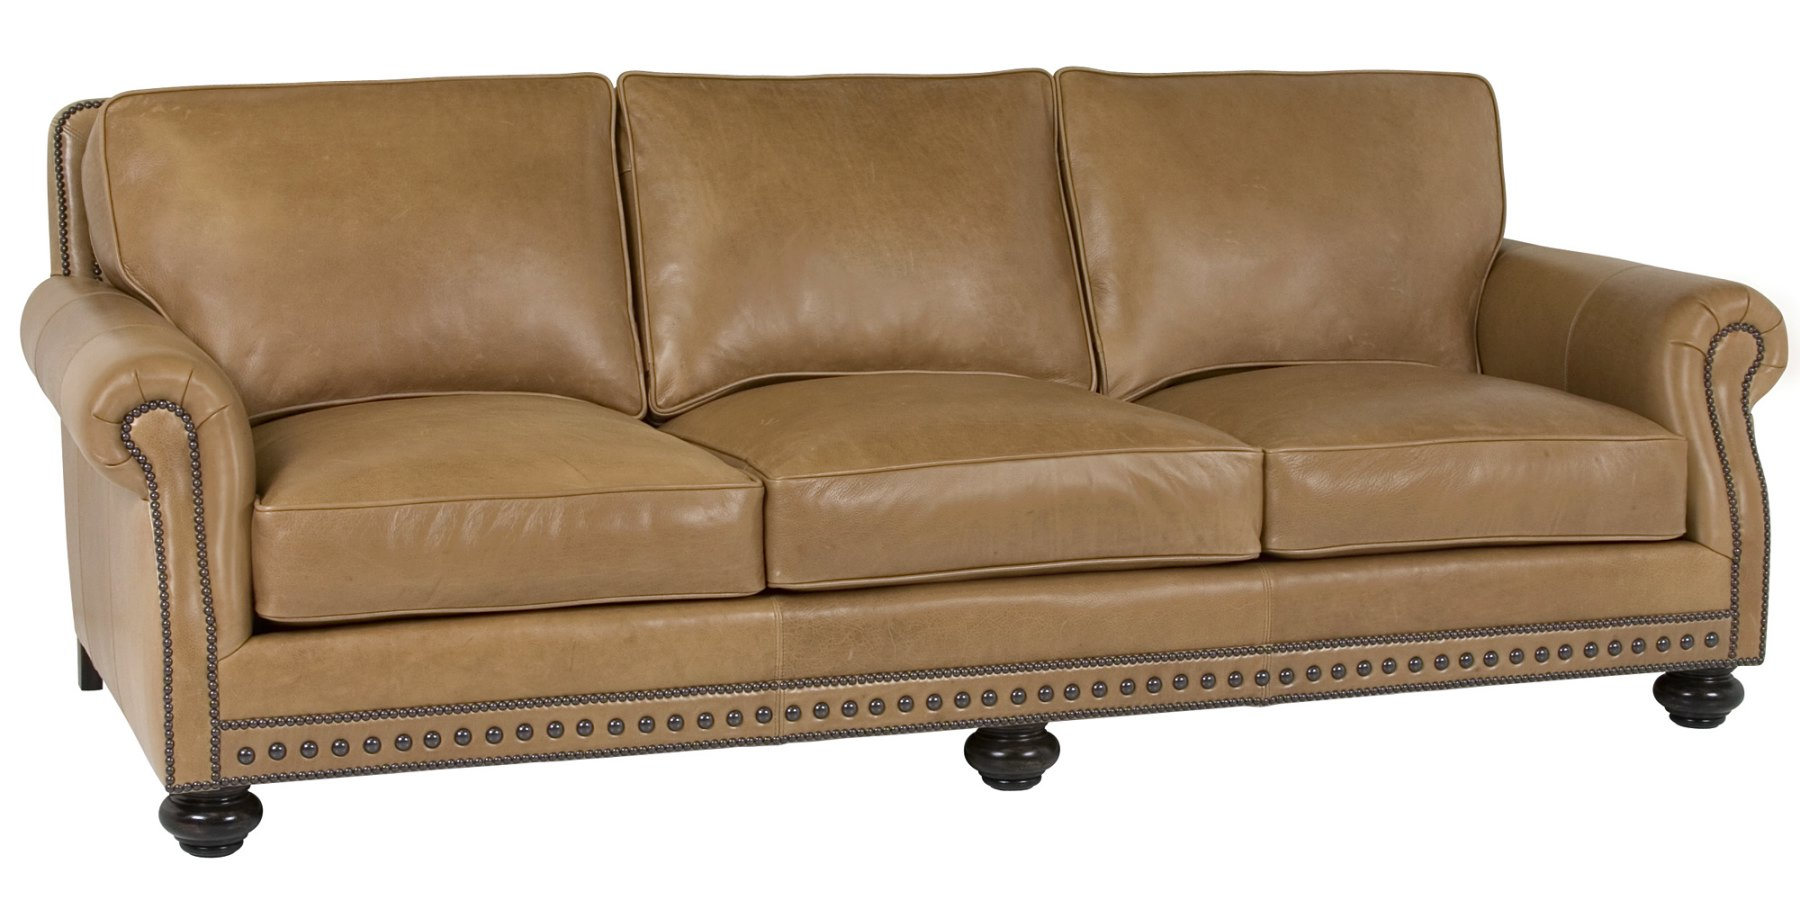 Leather Pillow Back Sofa With Rolled Arms And Nail Trim  : archie designer style traditional three leg leather sofa collection 1 from www.clubfurniture.com size 1800 x 900 jpeg 177kB